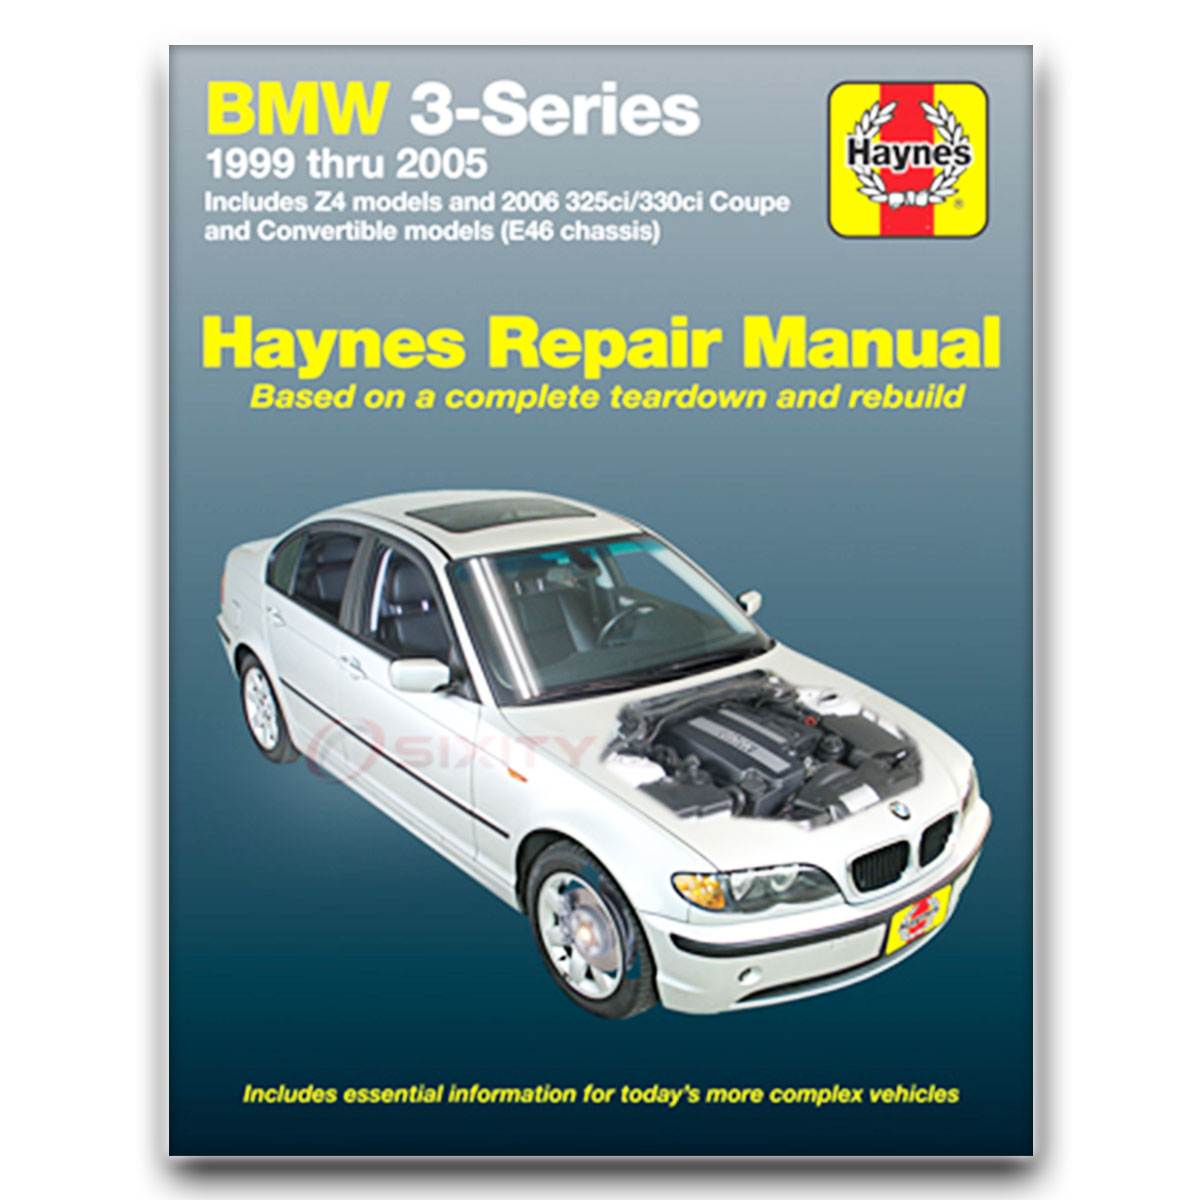 bmw 323i haynes repair manual base shop service garage book mf ebay rh ebay com 2000 bmw 323i owner's manual 2000 bmw 323i repair manual download